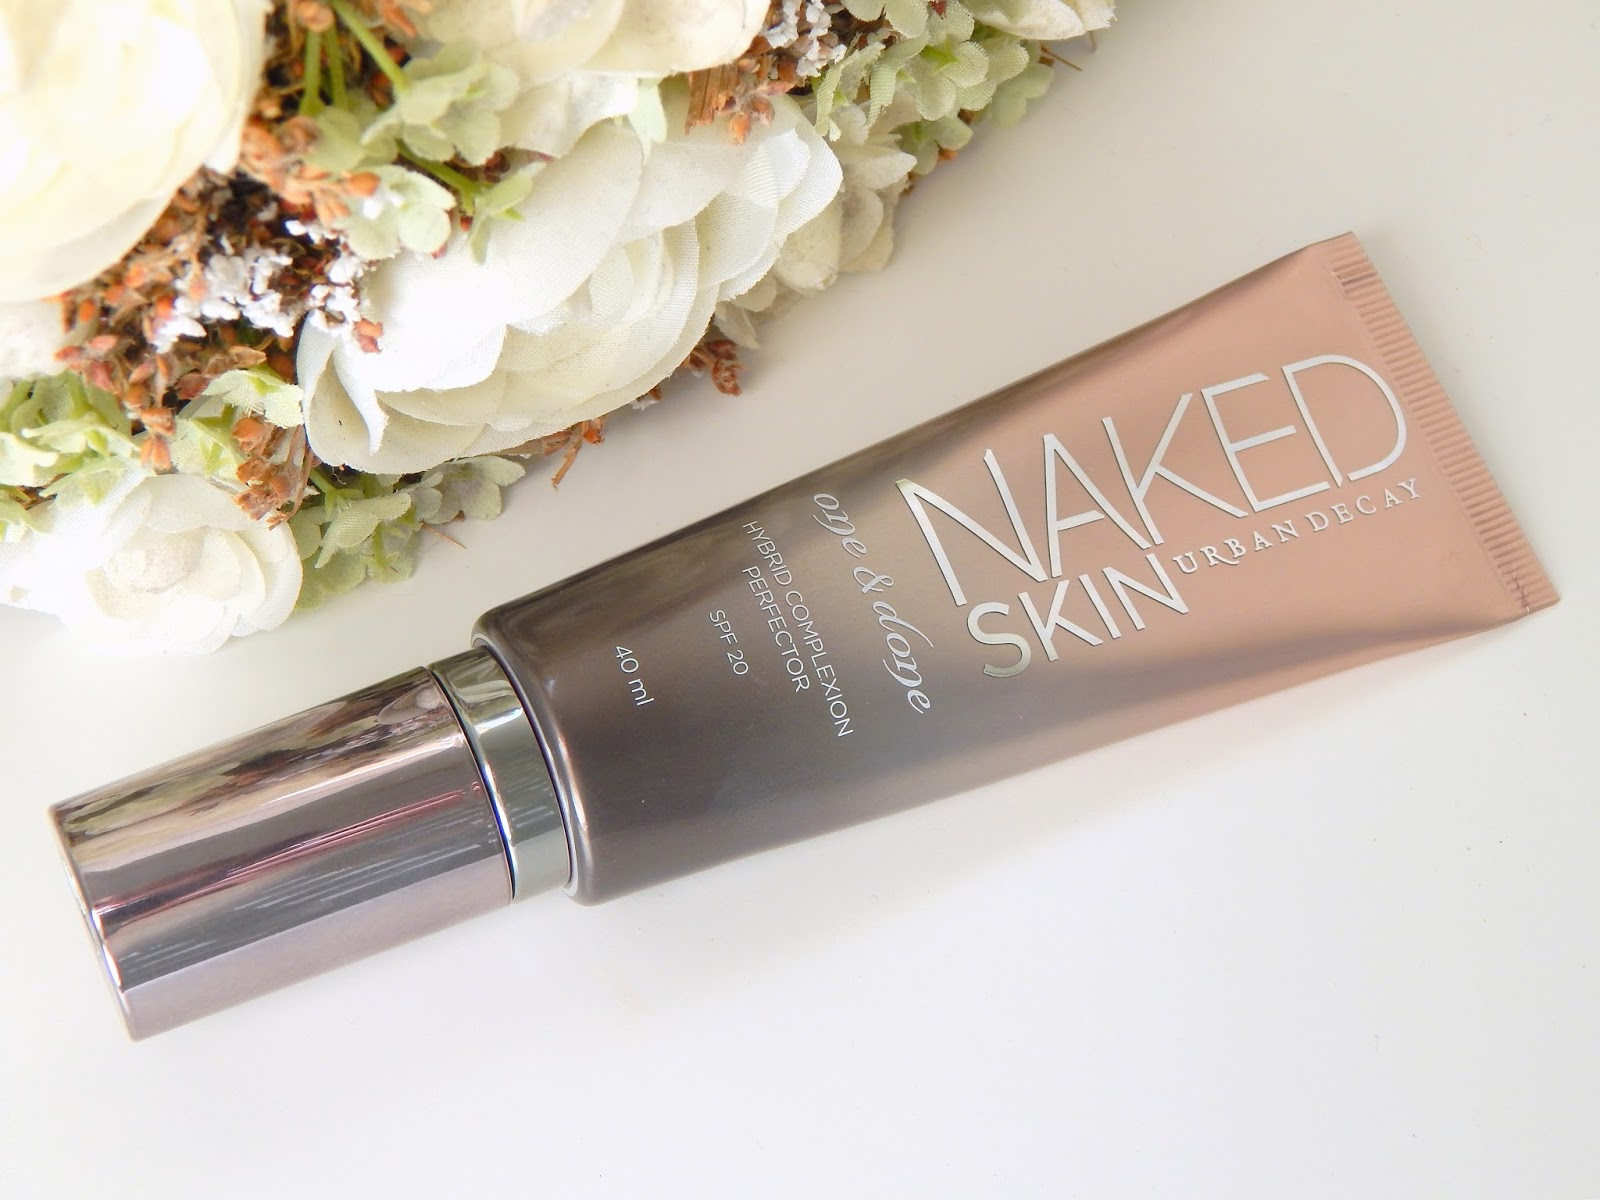 Urban Decay Naked Skin One & Done Foundation - Light